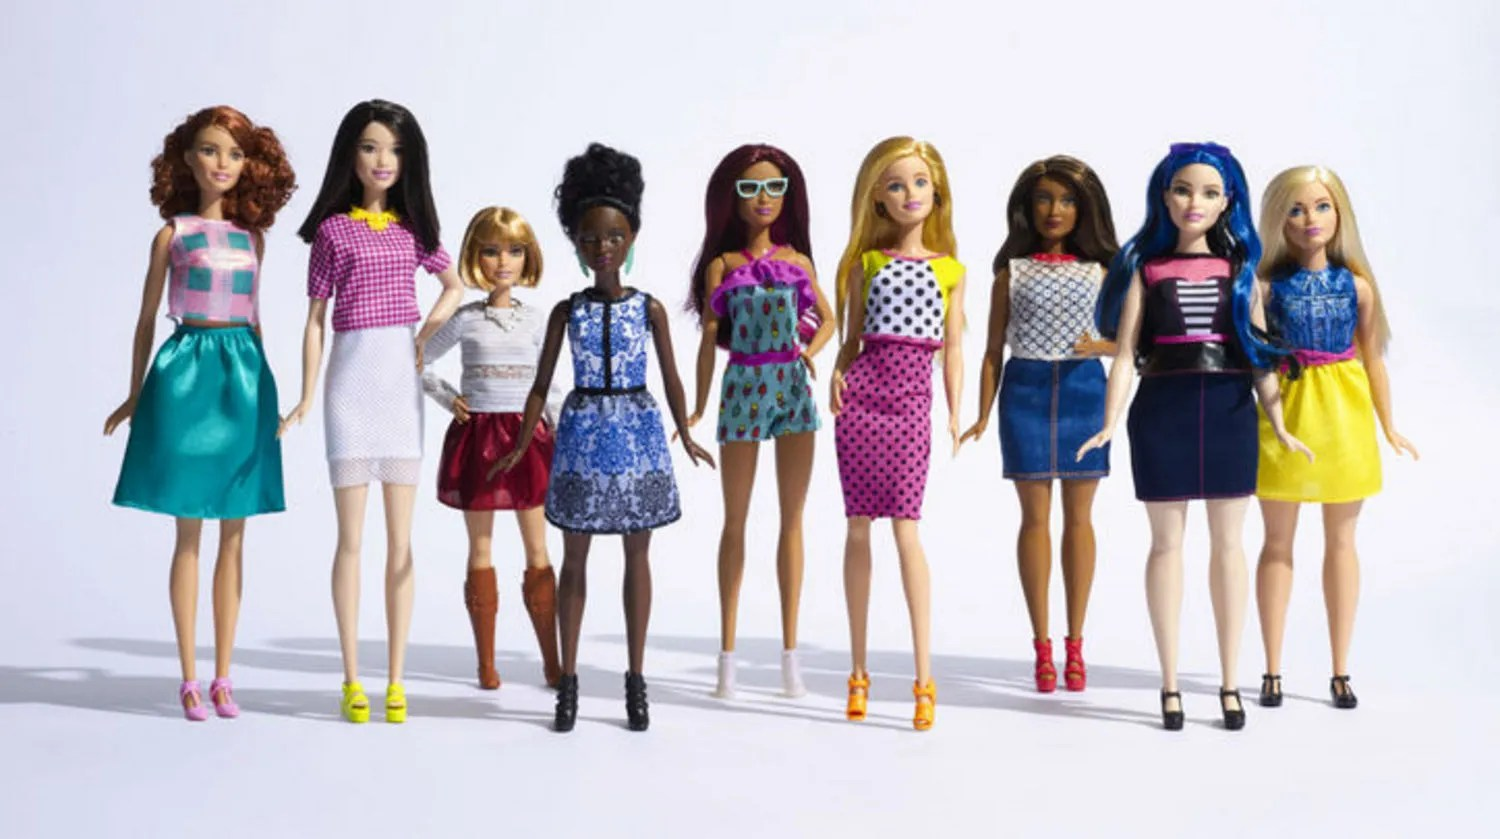 Barbie Girl Doll Wallpaper Everything You Need To Know About The New Barbies Glamour